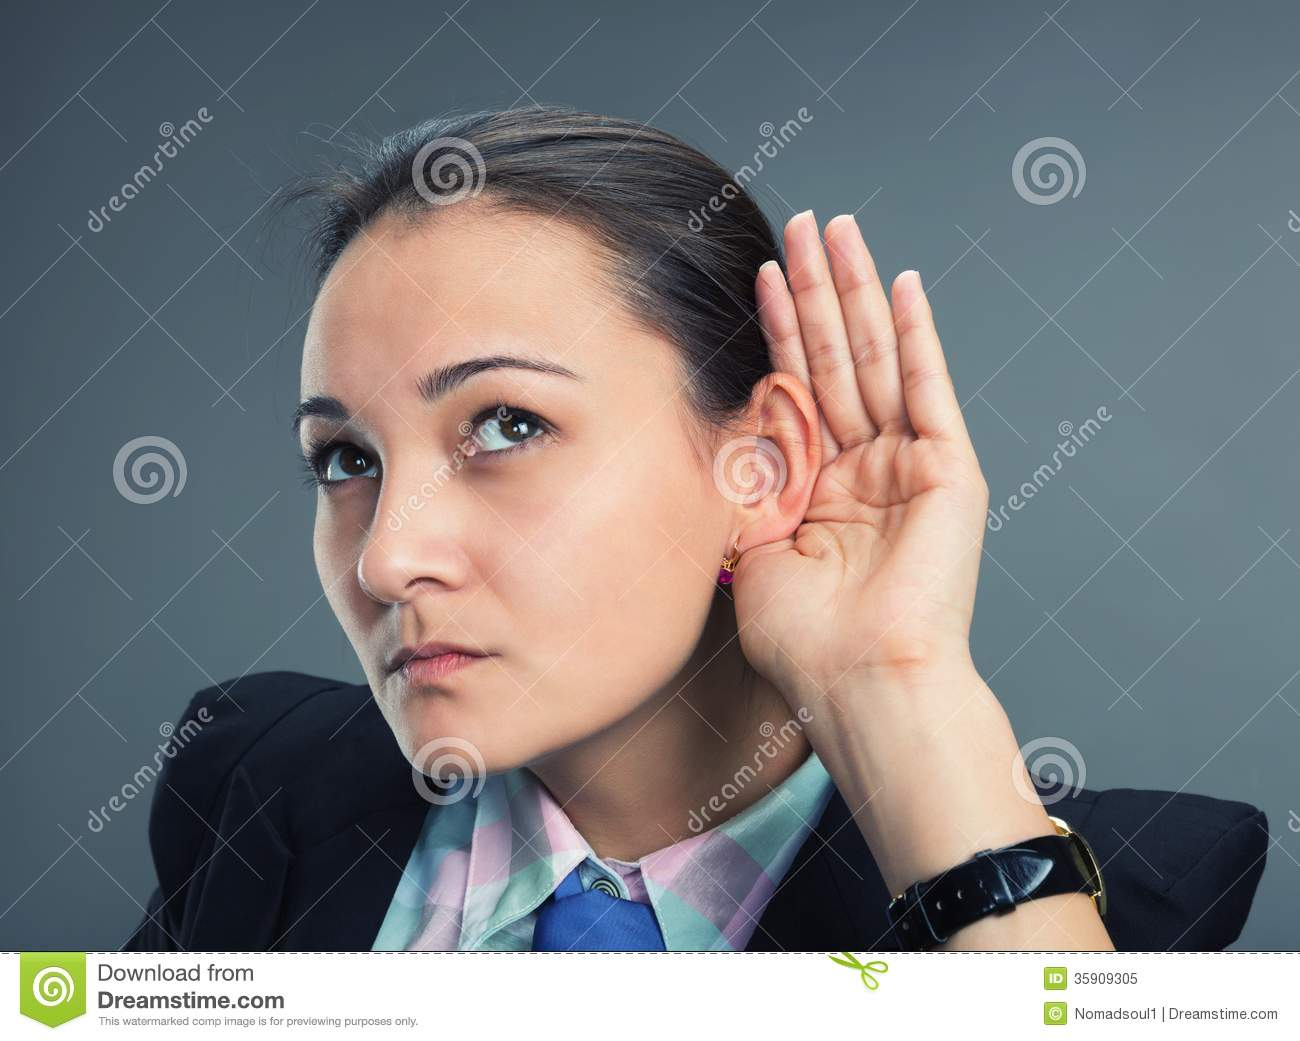 Can't Hear Royalty Free Stock Photo - Image: 35909305